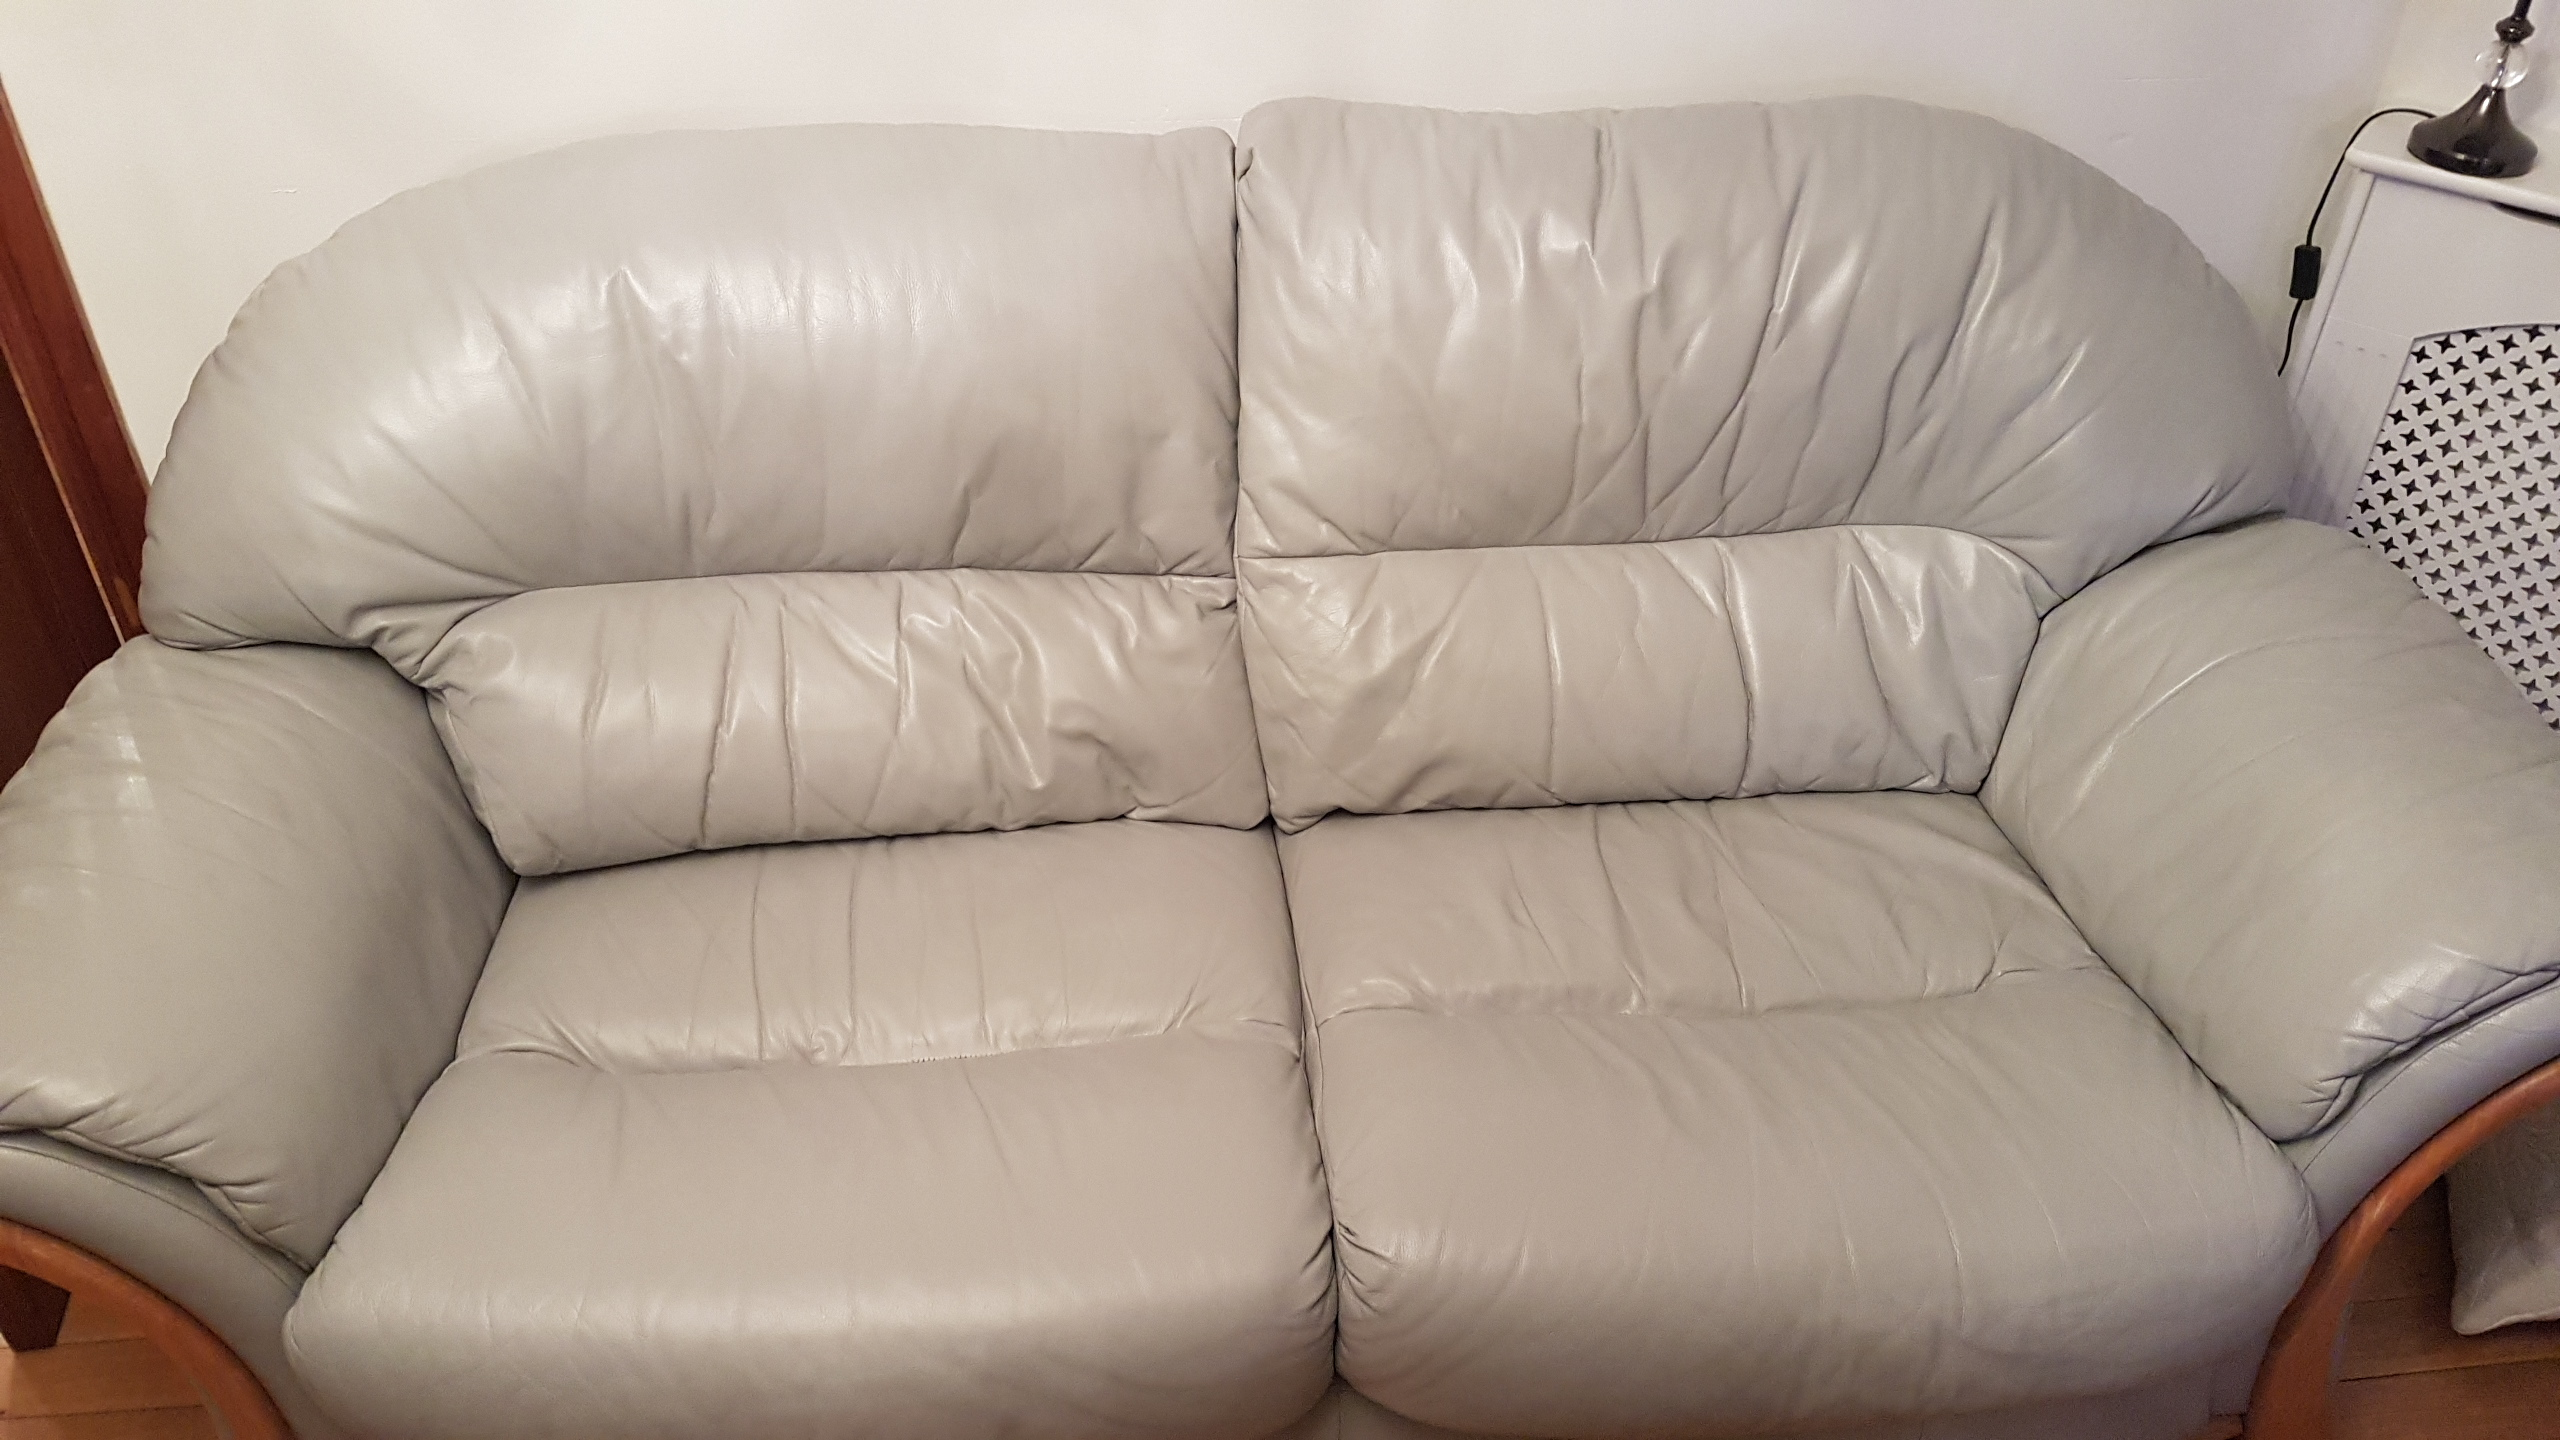 Cream leather sofa change to silver gray